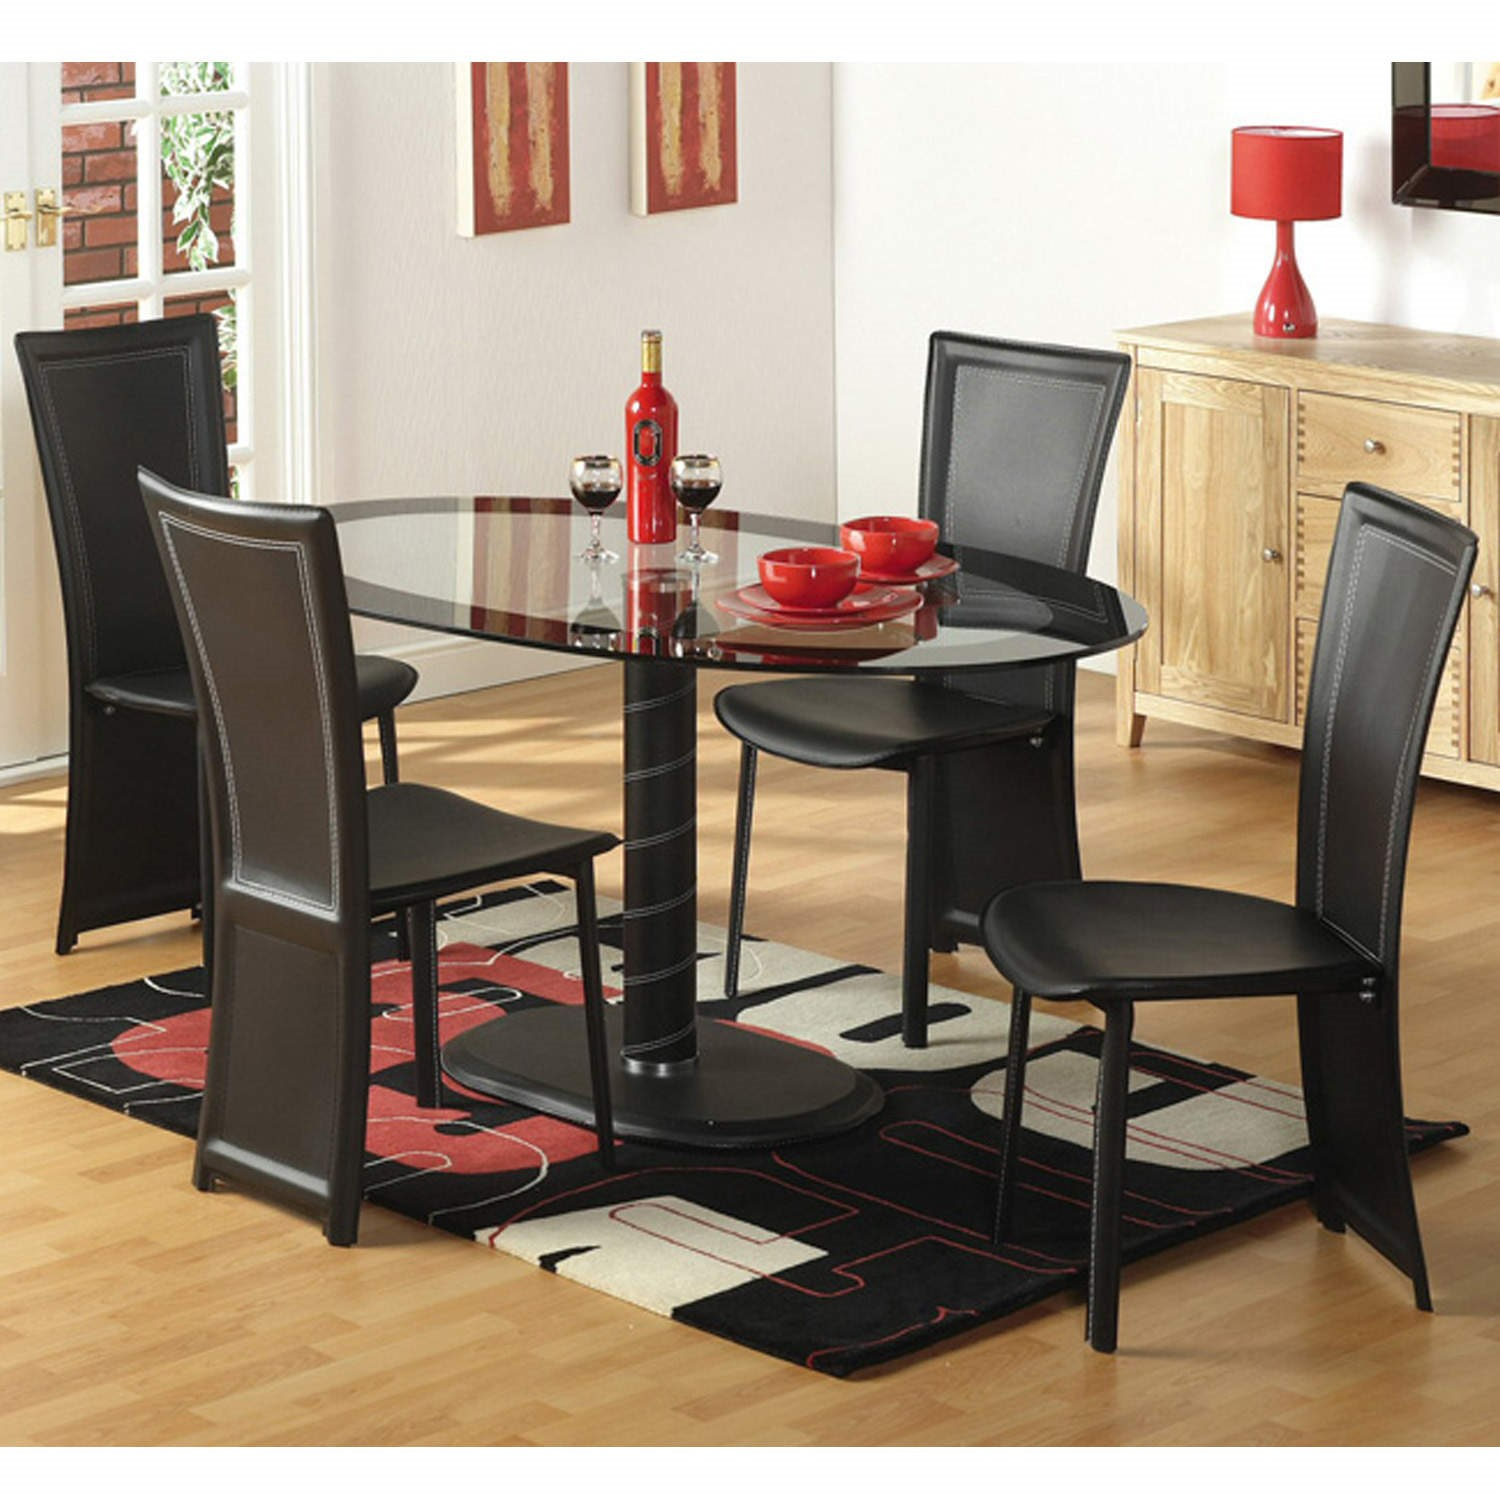 Seconique Cameo Oval Dining Set + 4 Black Faux Leather Dining Chairs